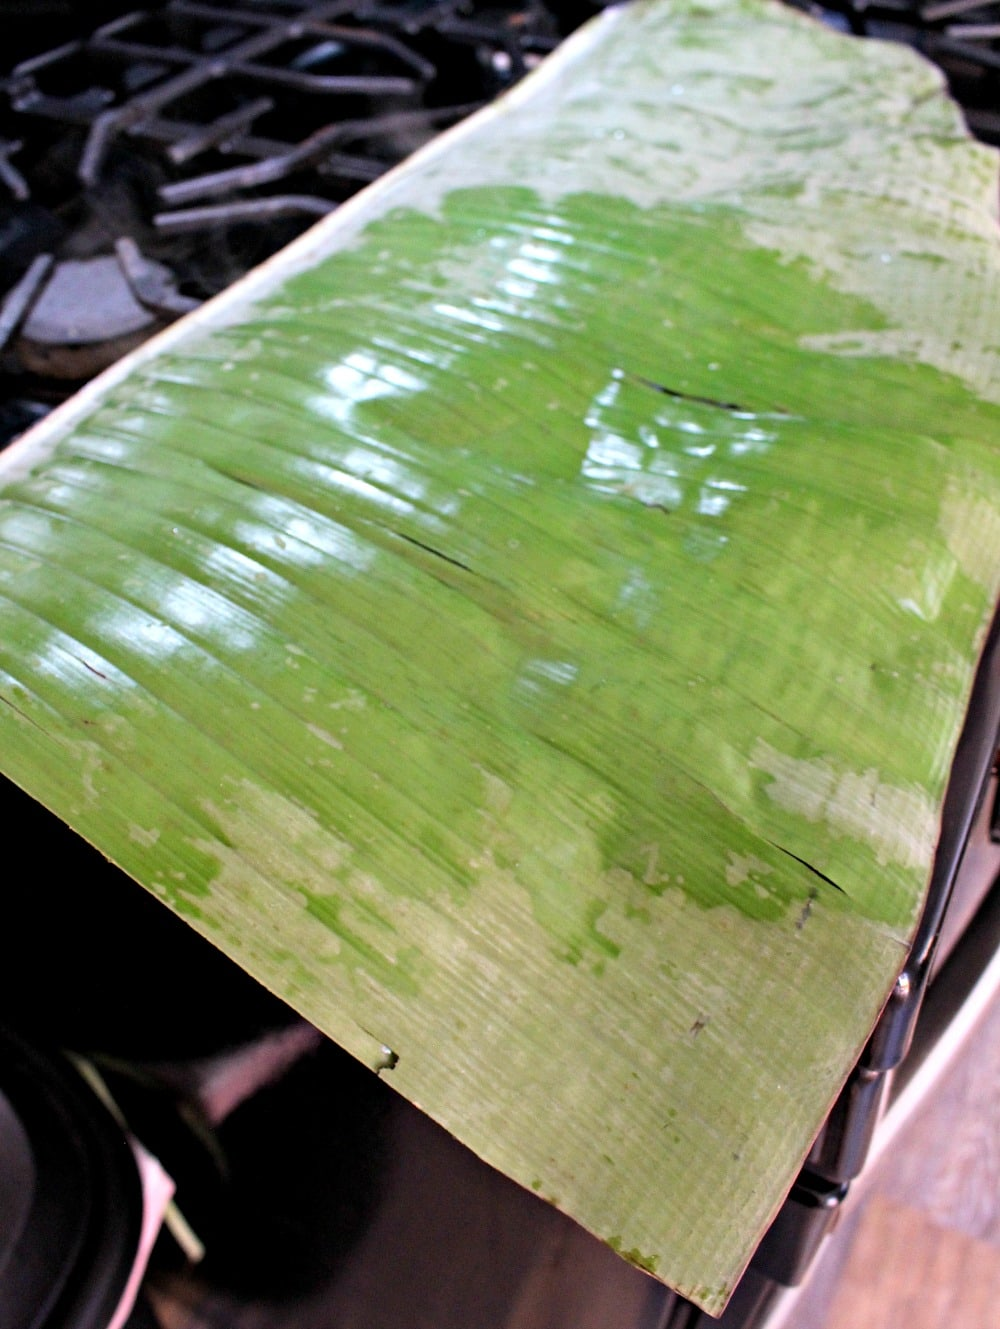 Banana leaves heating up on a gas stove.